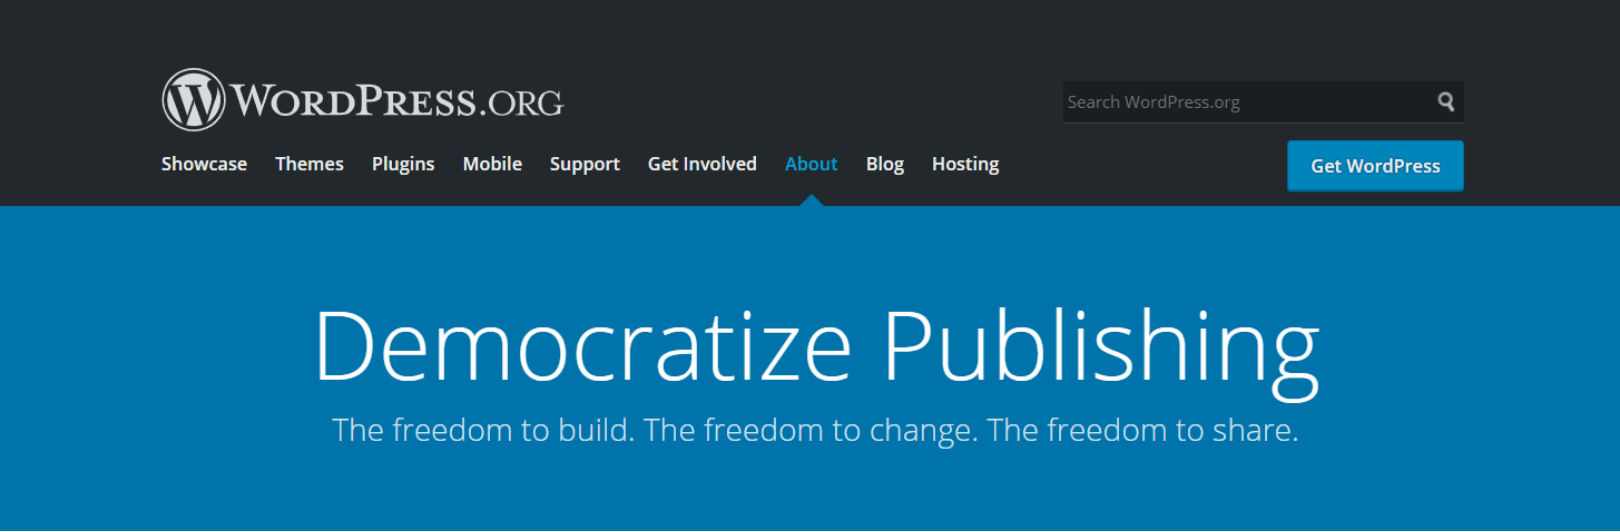 WordPress org About Page Democratize Publishing